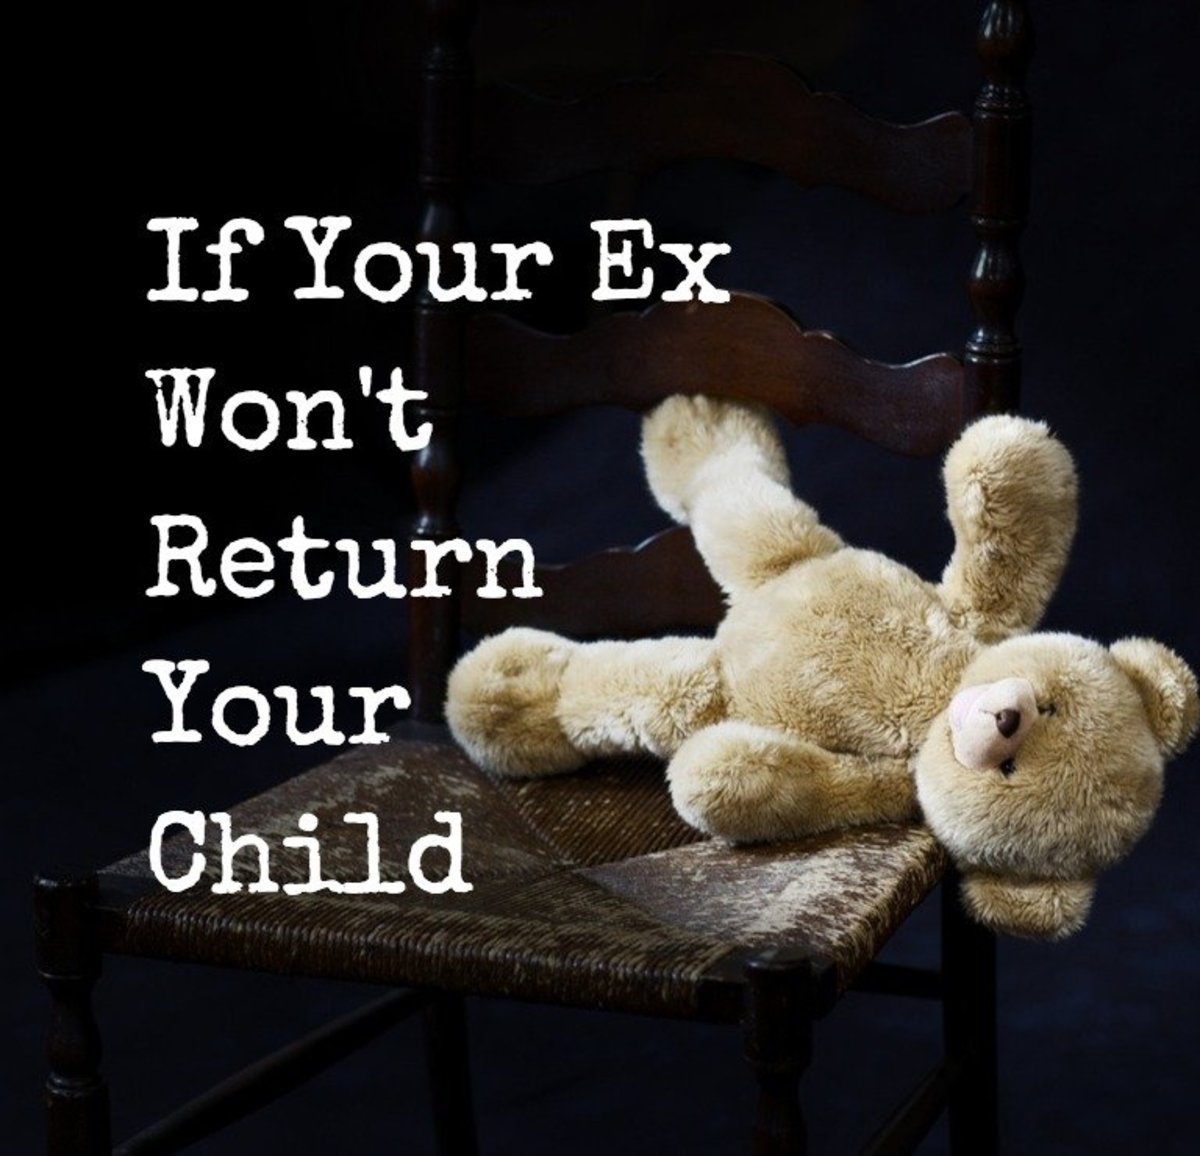 When a parent withholds a child from another parent, it's traumatic for the child and the parent who's missing their son or daughter.